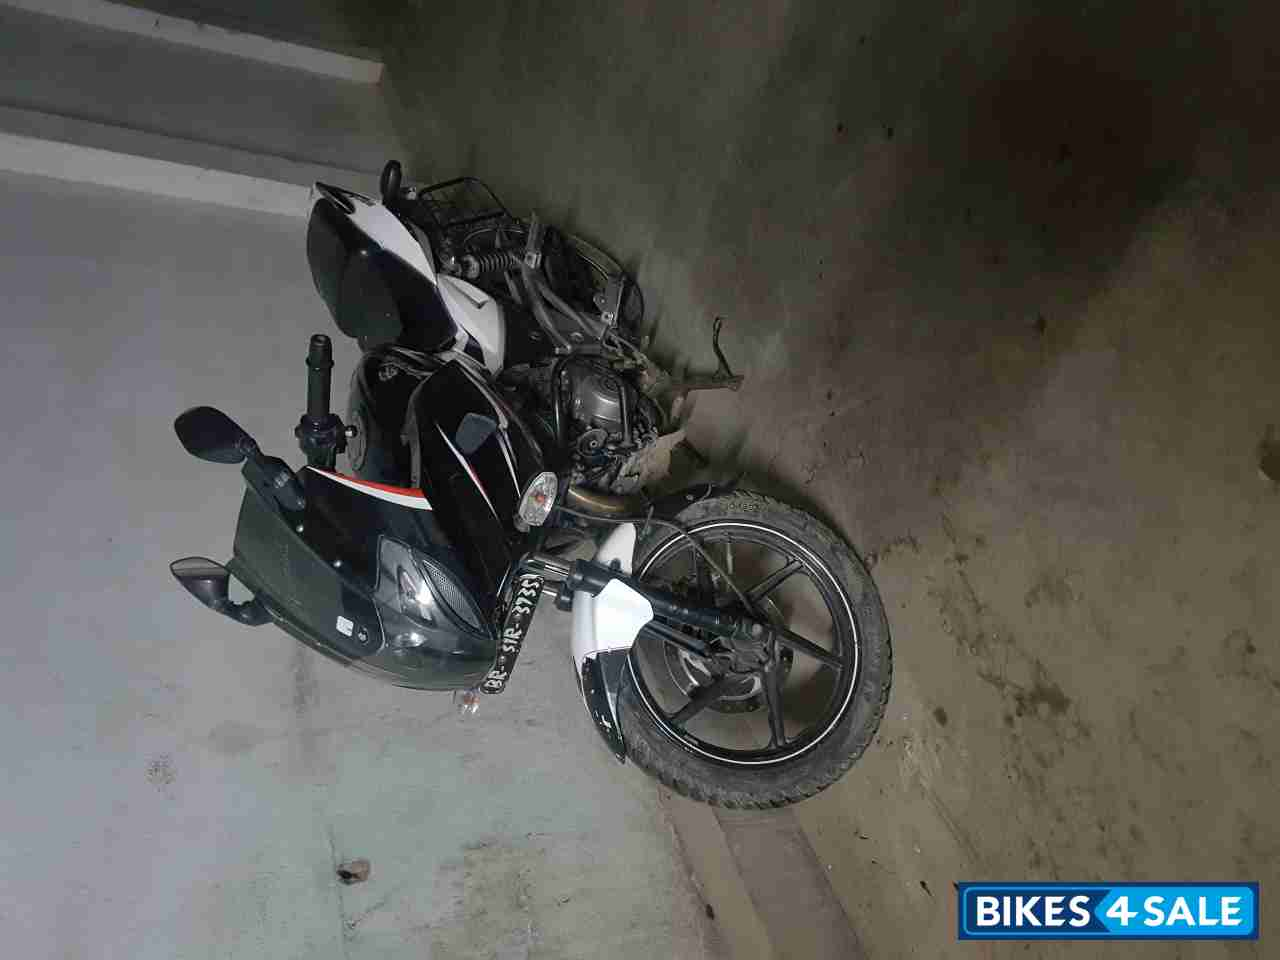 Blacken White Bajaj Pulsar 220F